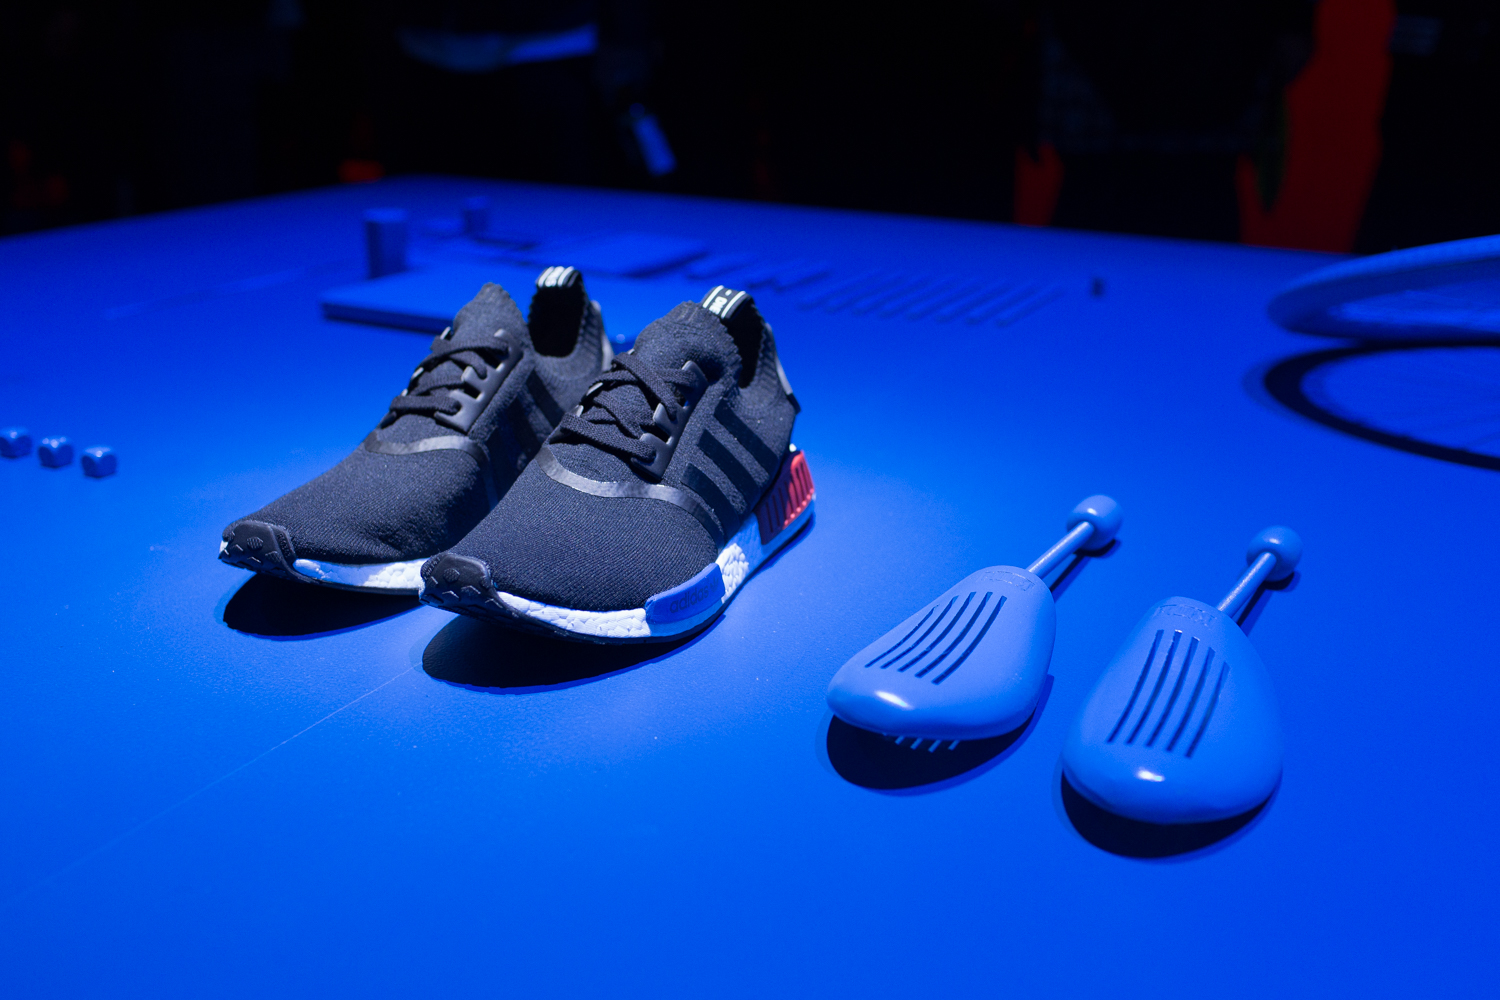 adidas-Originals-NMD-launch-New-York-THE-DAILY-STREET-9